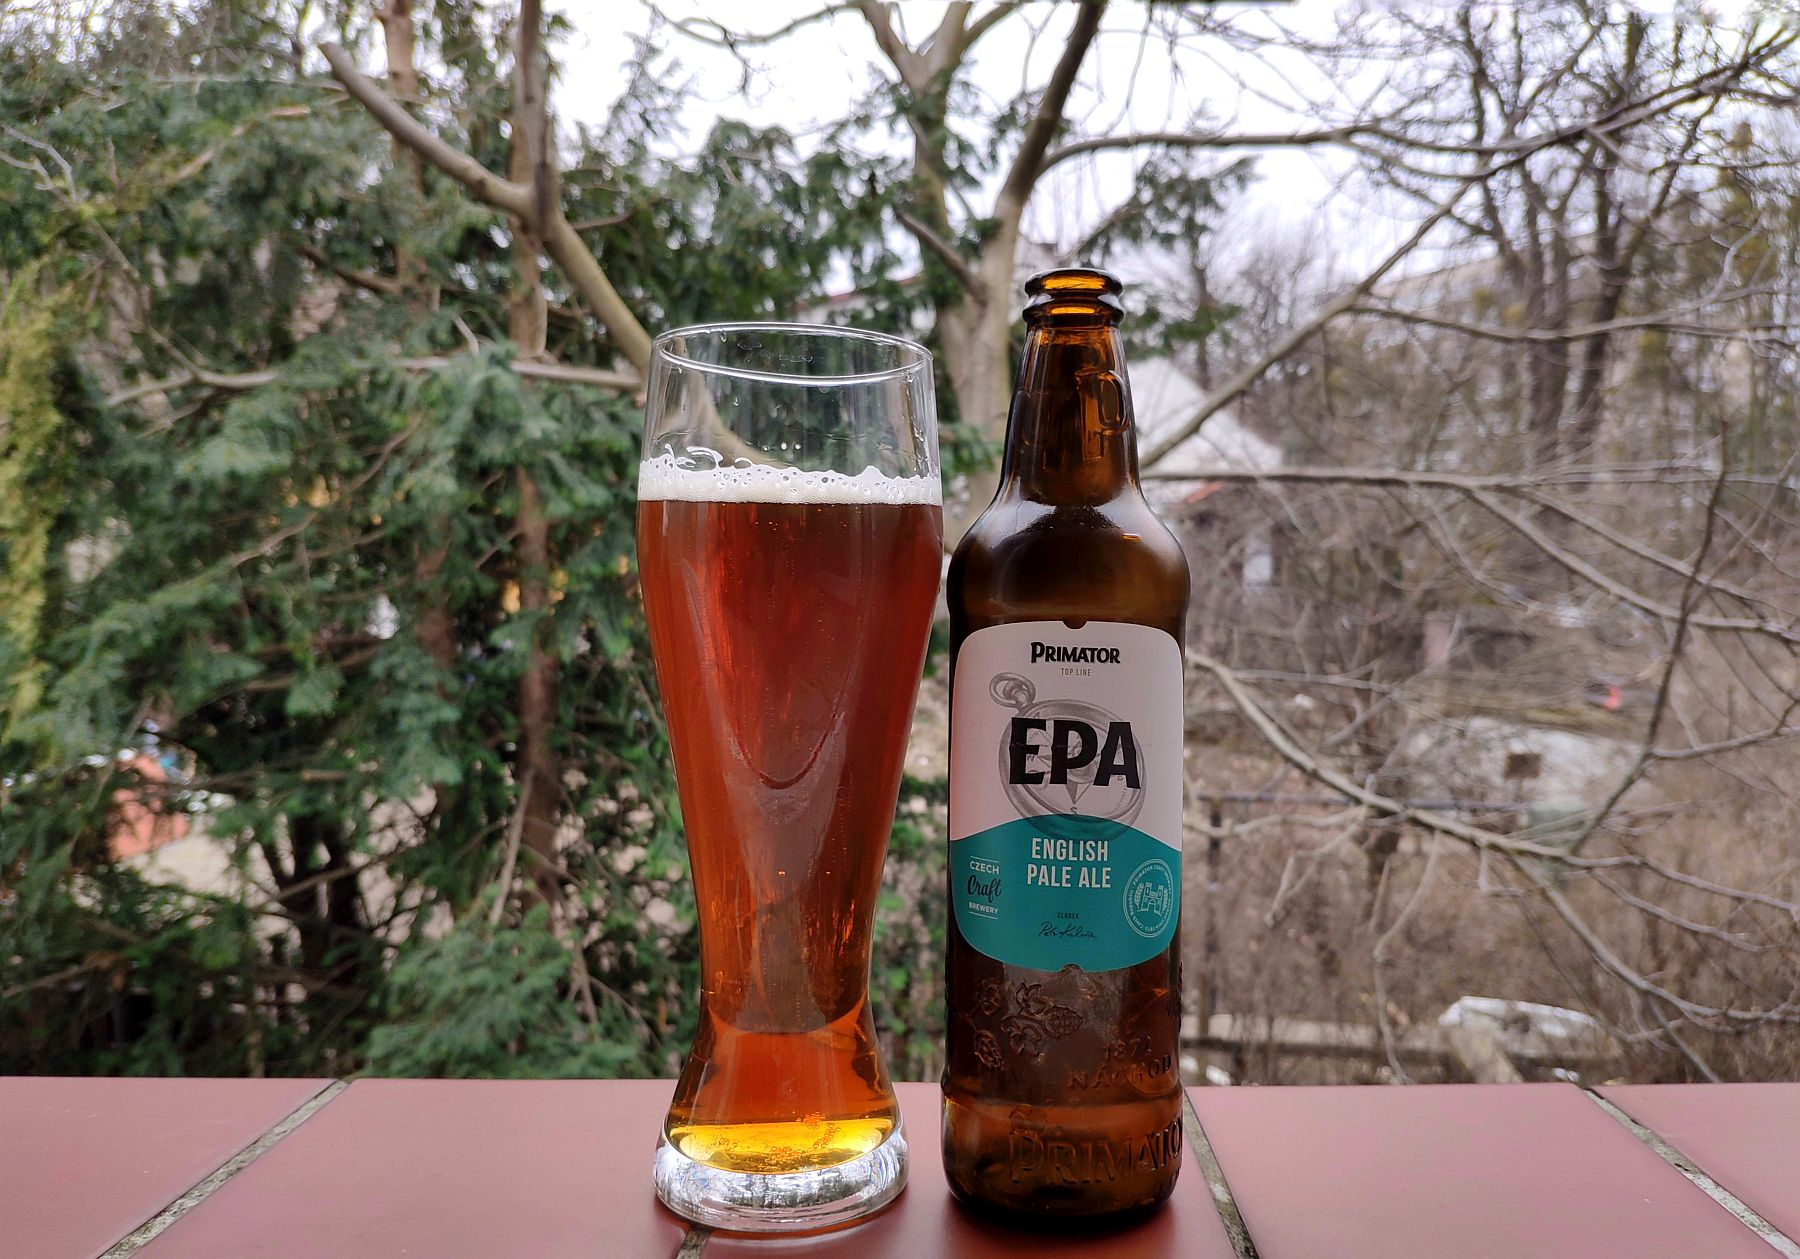 Primator EPA (English Pale Ale)